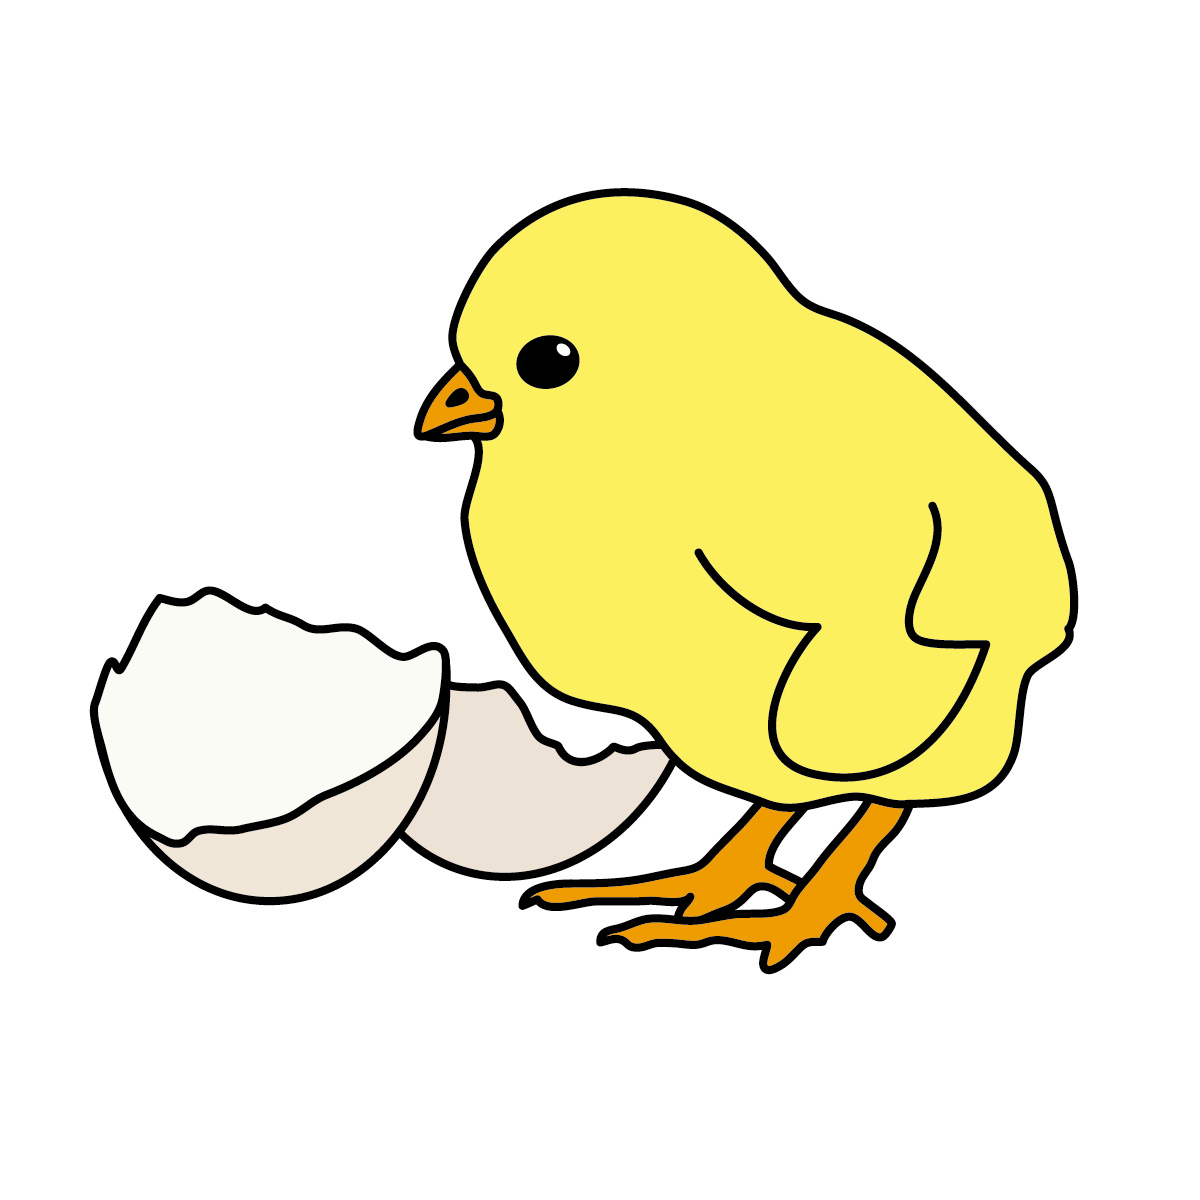 Chick clipart #15, Download drawings